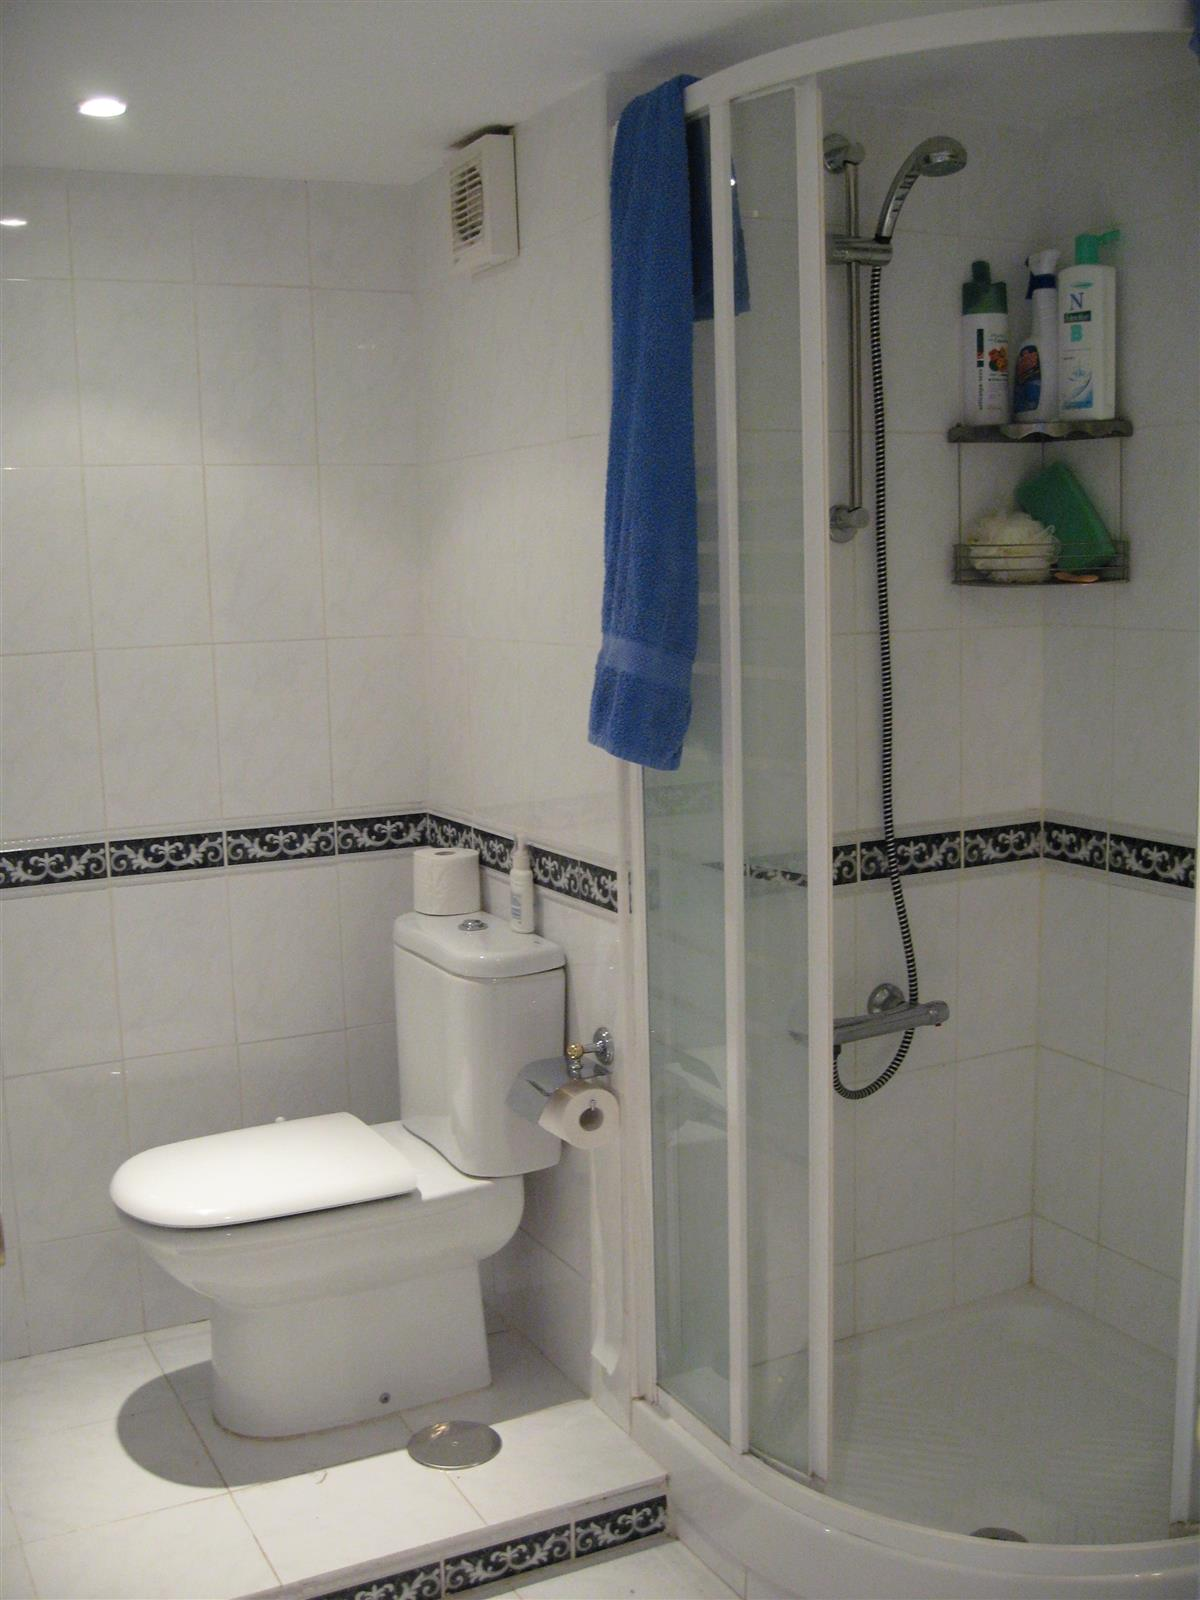 Holiday studio for rent in fuengirola fuengirola centre for Bathrooms fuengirola